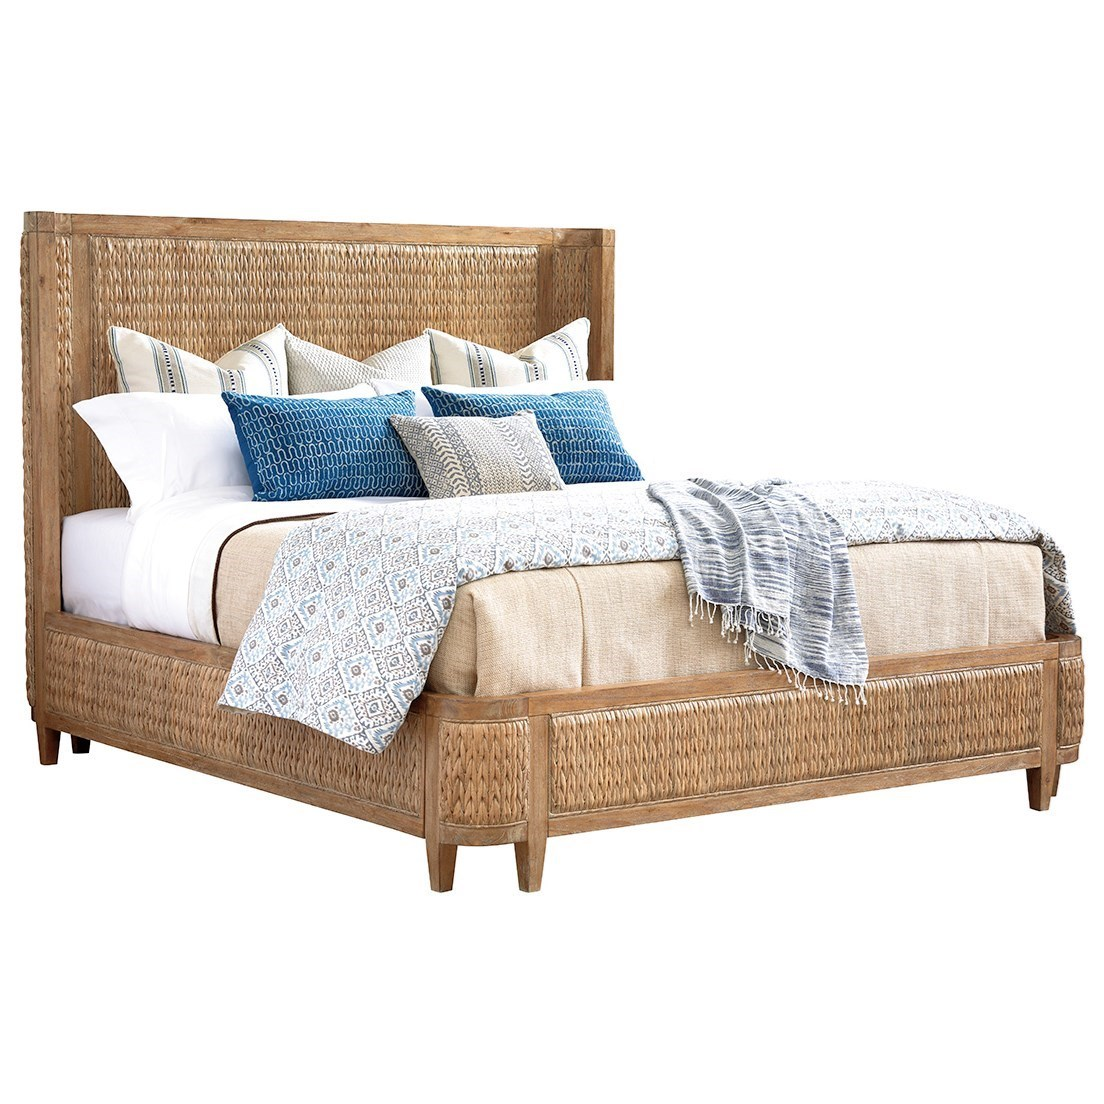 Tommy Bahama Home Los Altos Ivory Coast Woven Bed 5/0 Queen - Item Number: 566-133C